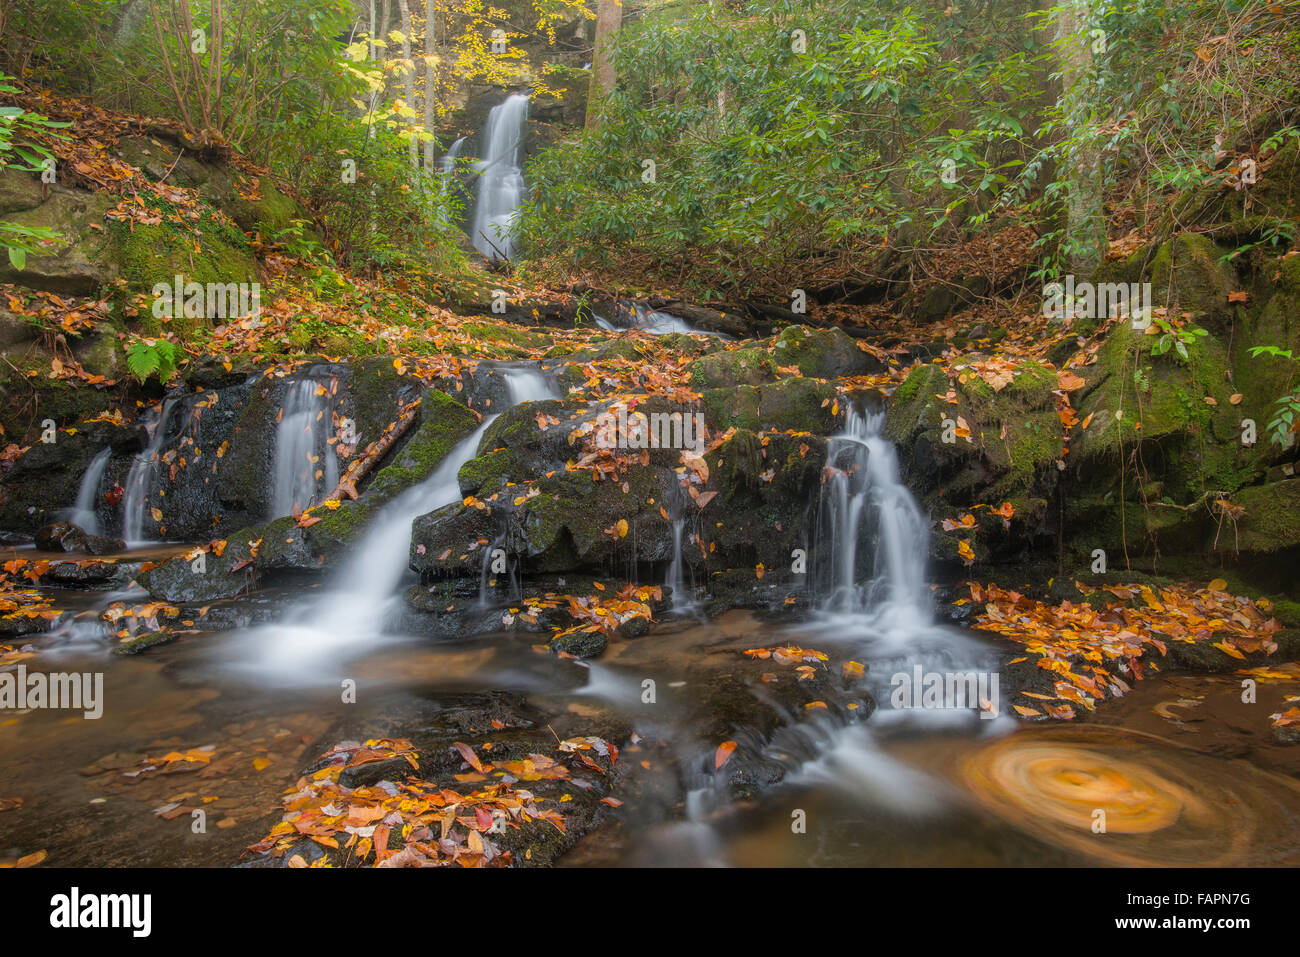 Autumn leaves swirling, Manis Branch Falls, Great Smoky Mountains NP, Tennessee USA - Stock Image